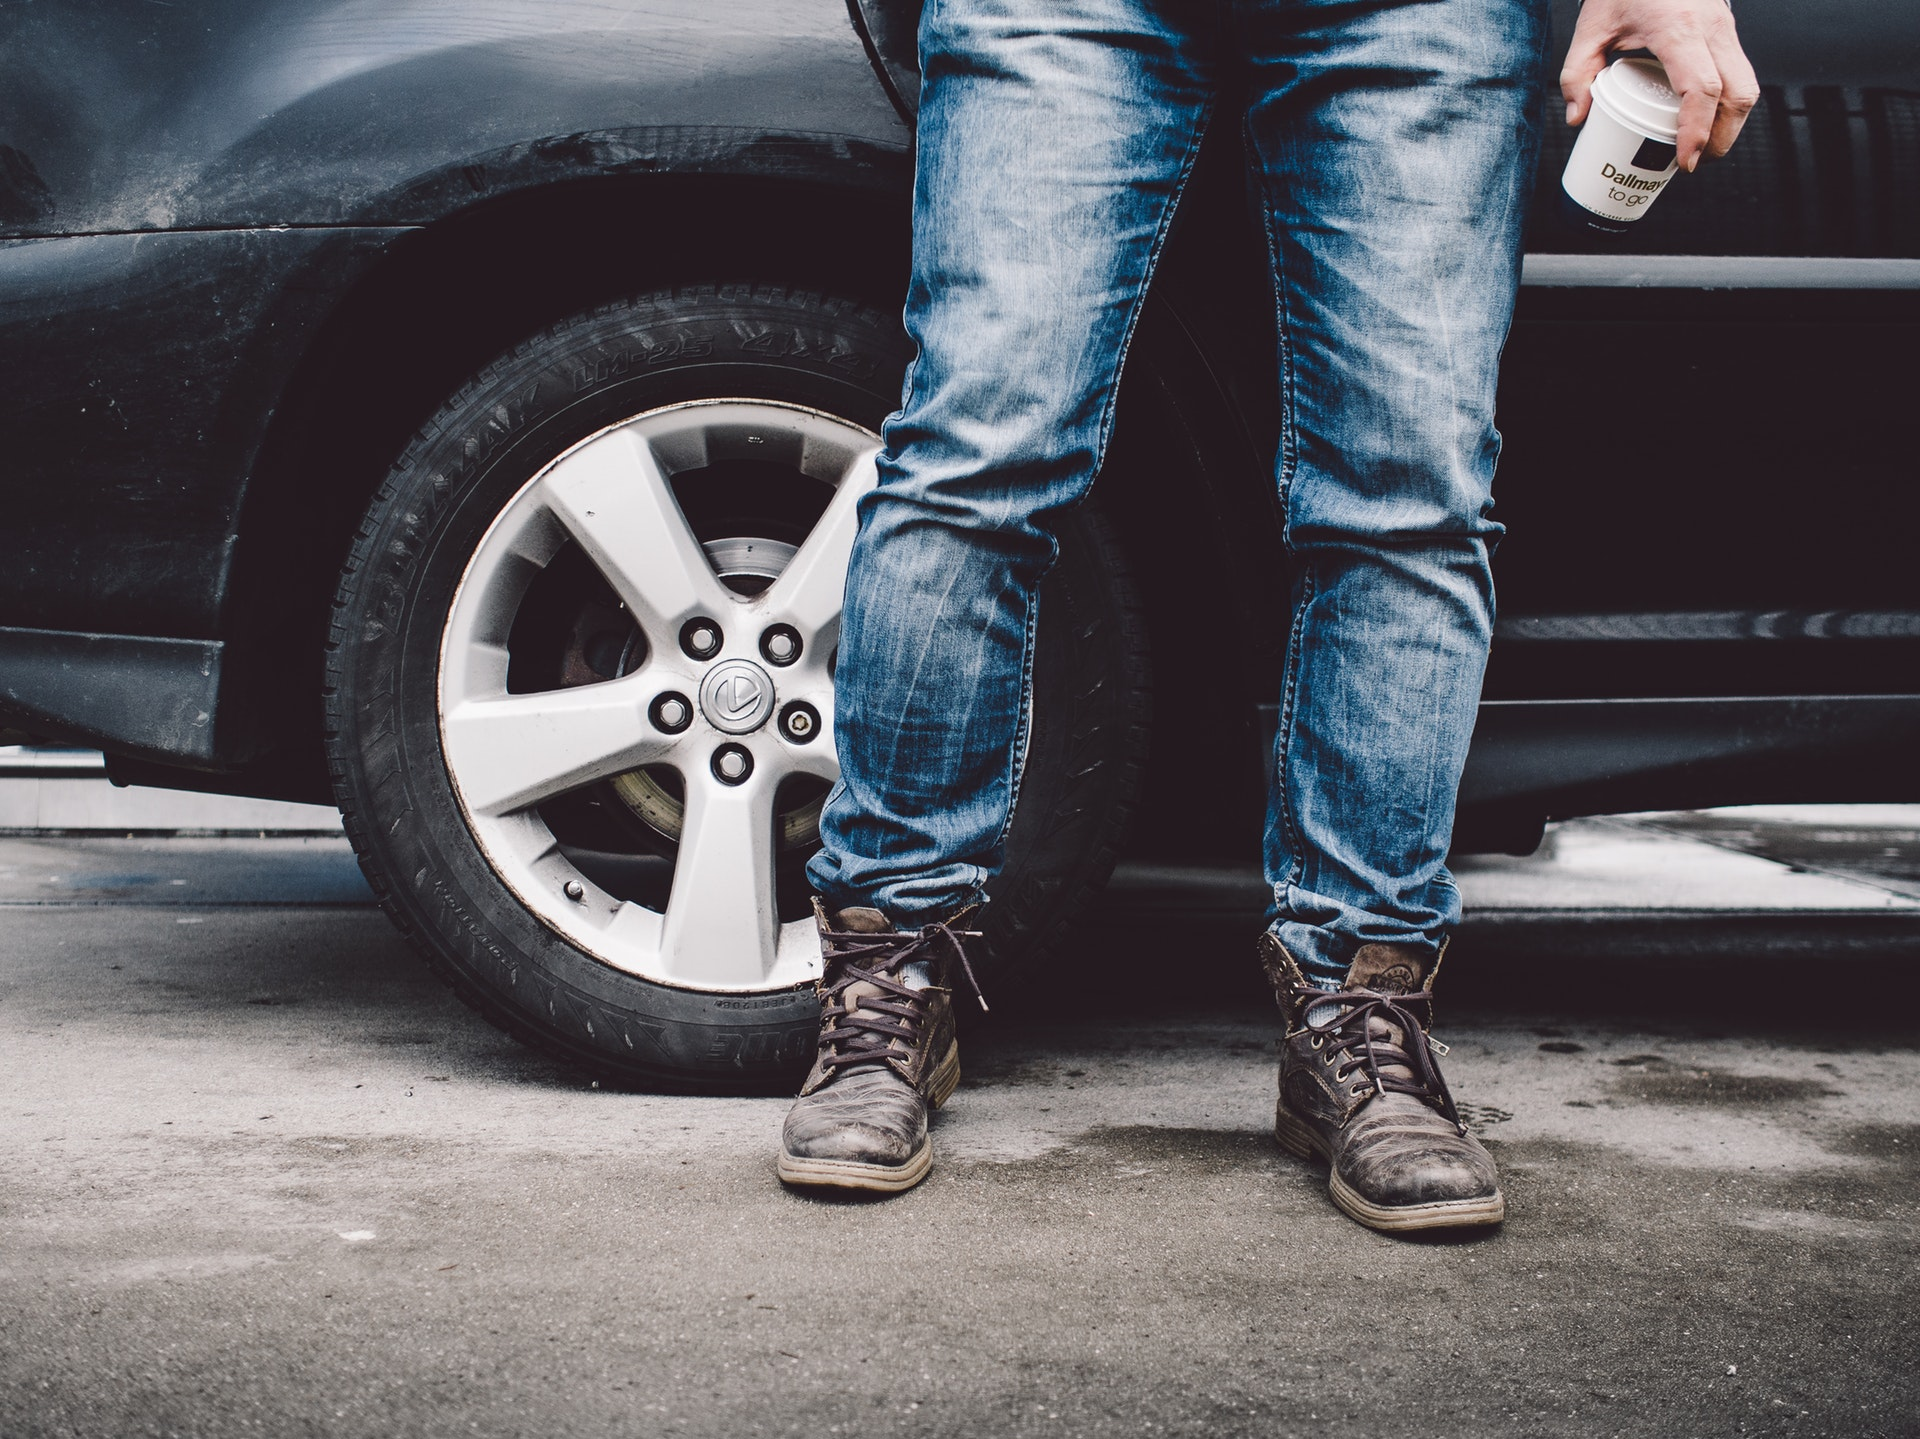 Person wearing jeans standing next to a car